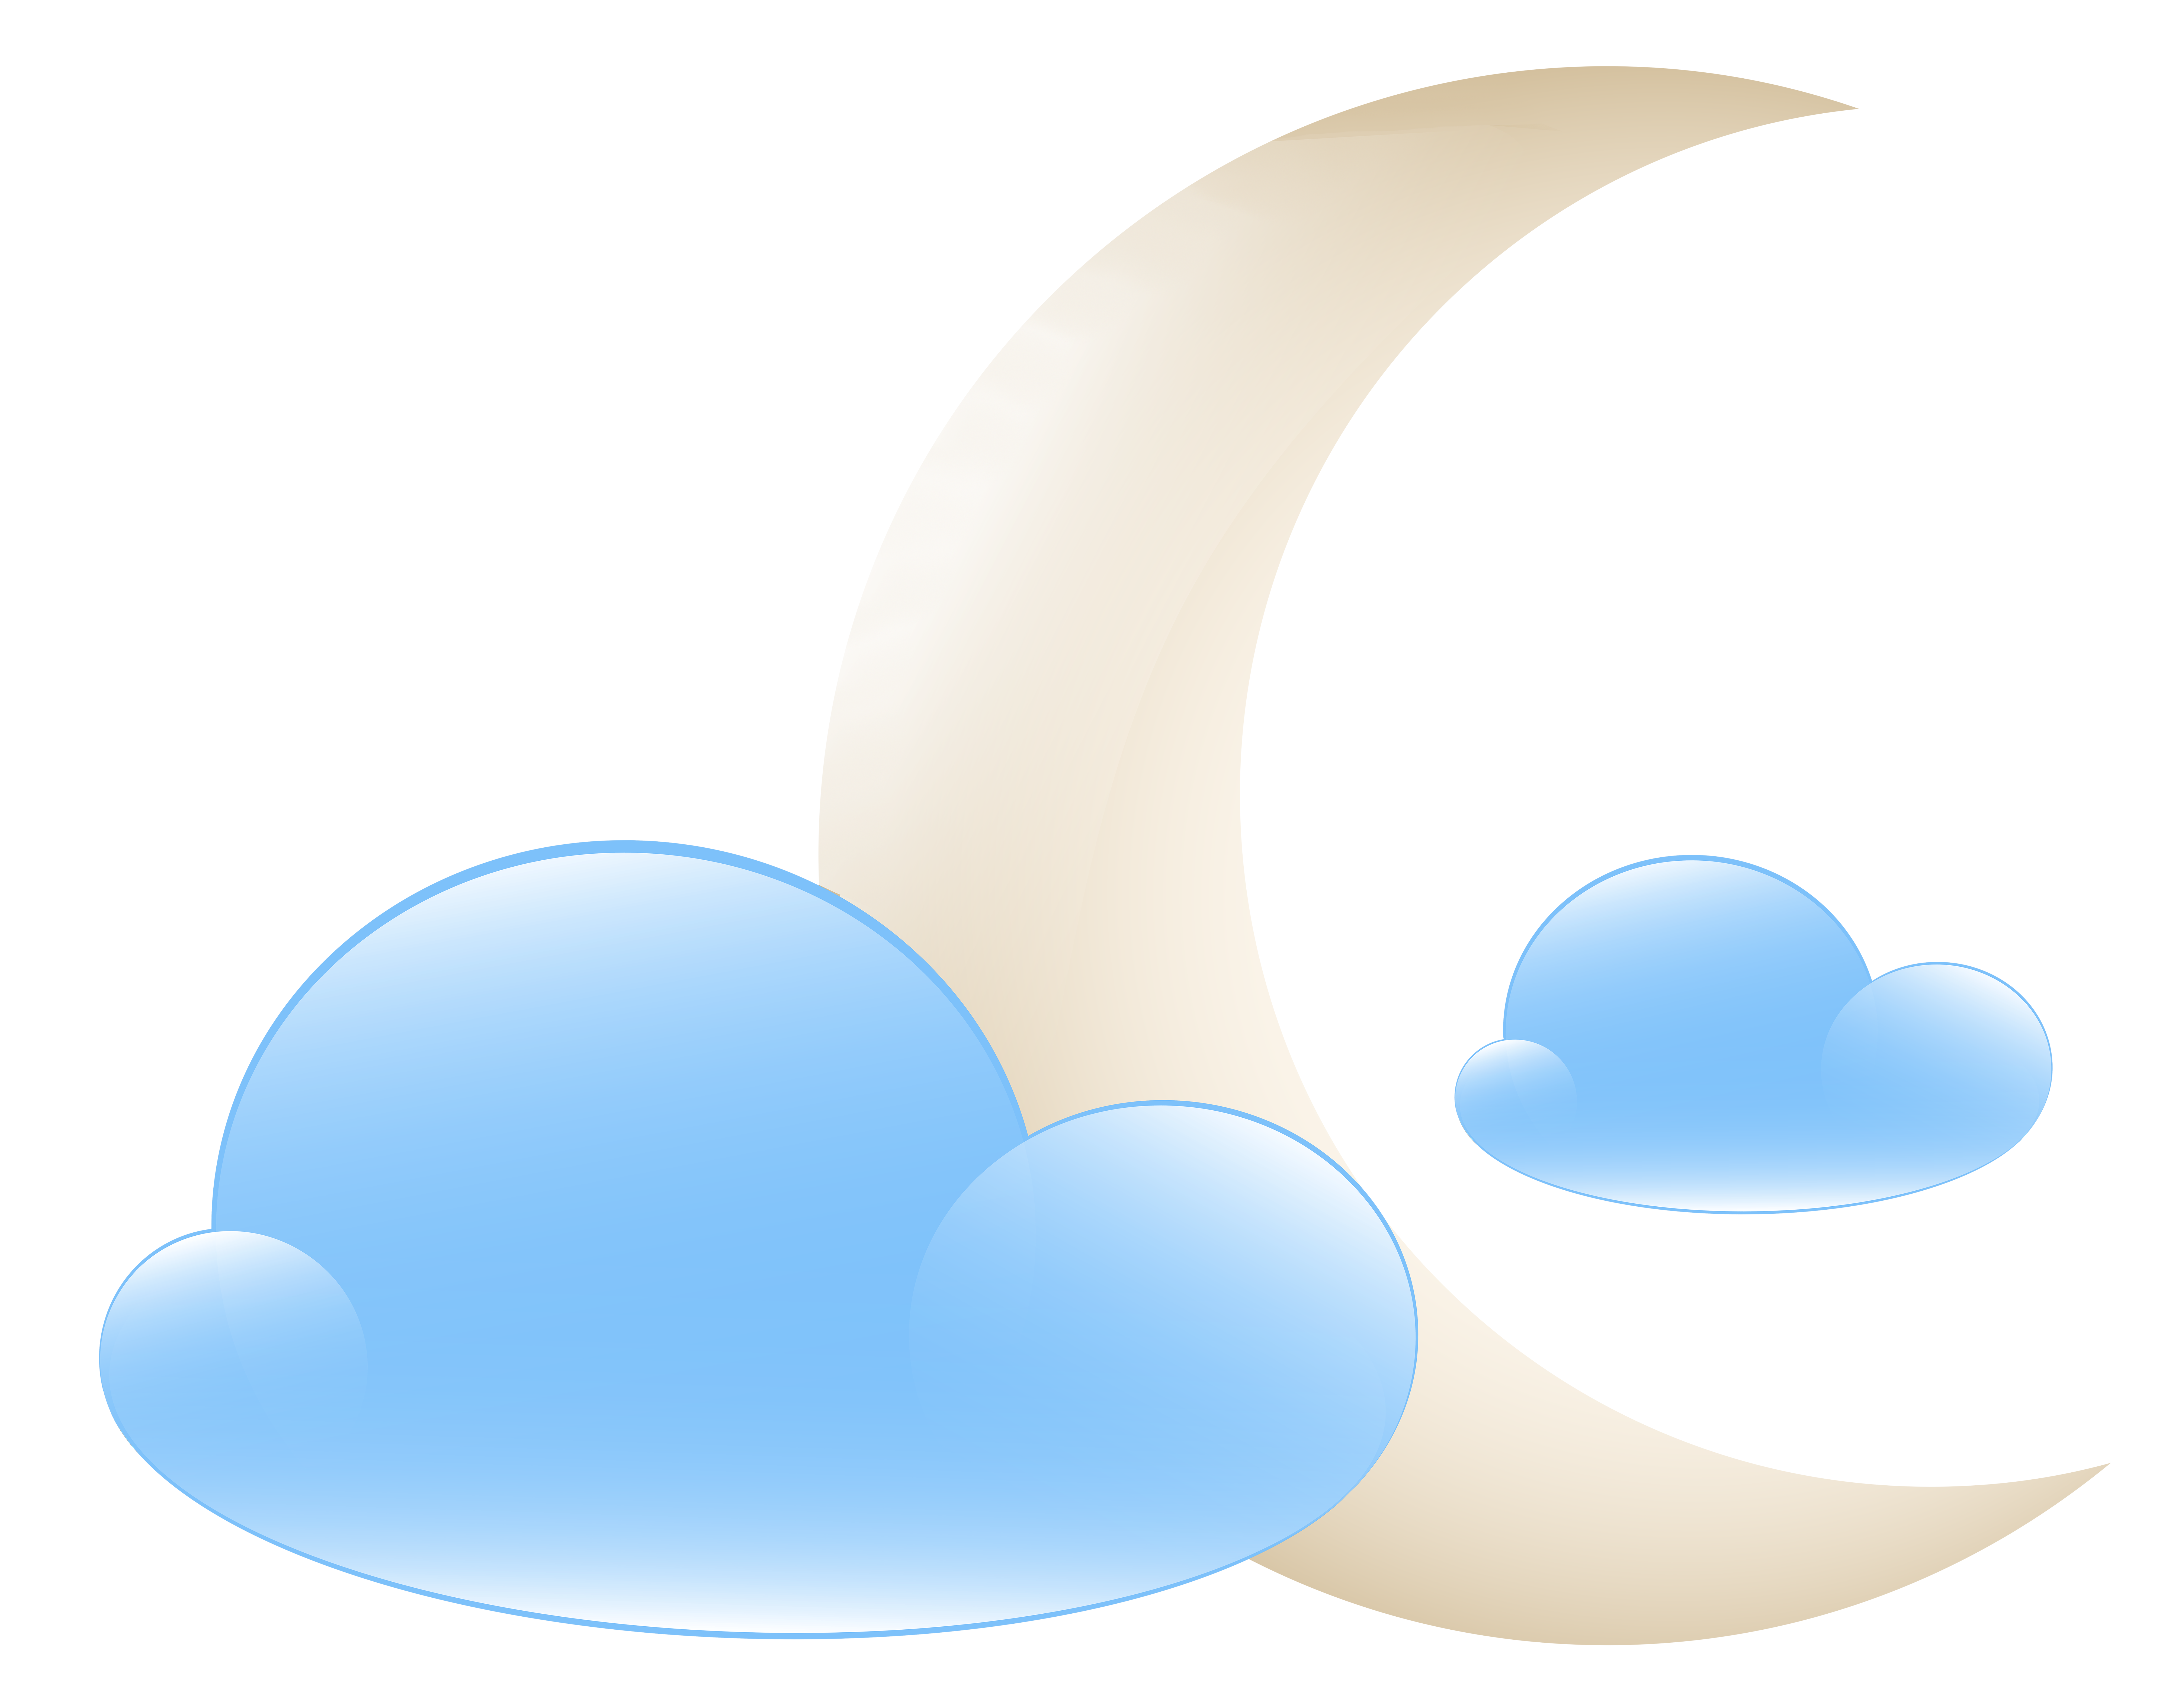 8000x6299 Moon With Clouds Weather Icon Png Clip Art